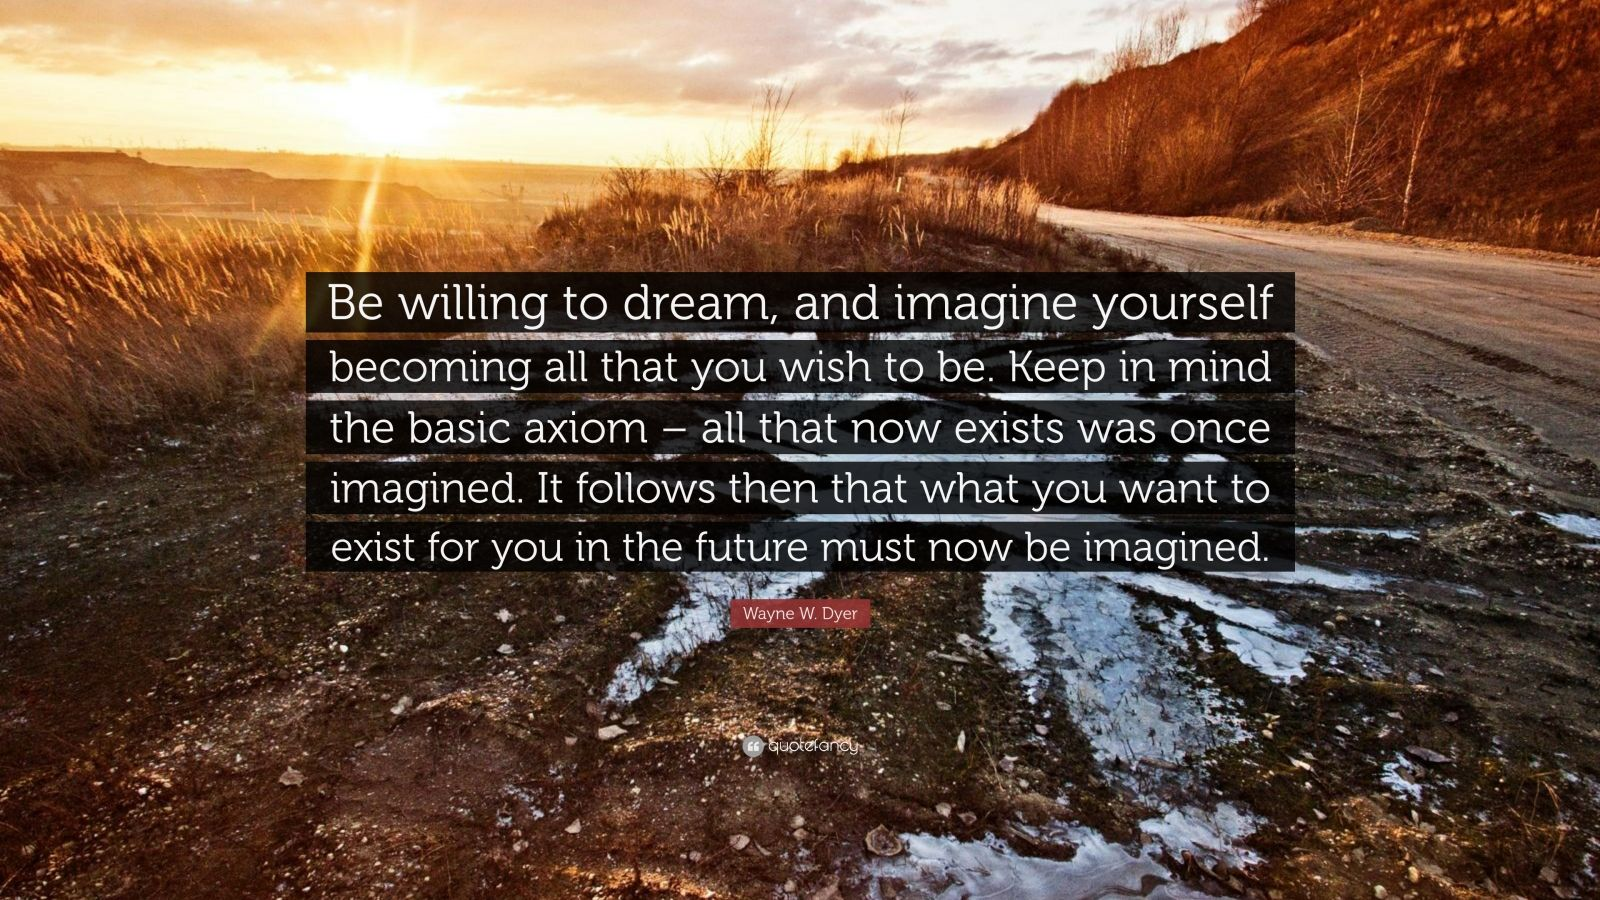 """Wayne W. Dyer Quote: """"Be willing to dream, and imagine yourself becoming all that you wish to be. Keep in mind the basic axiom – all that now exists was once imagined. It follows then that what you want to exist for you in the future must now be imagined."""""""